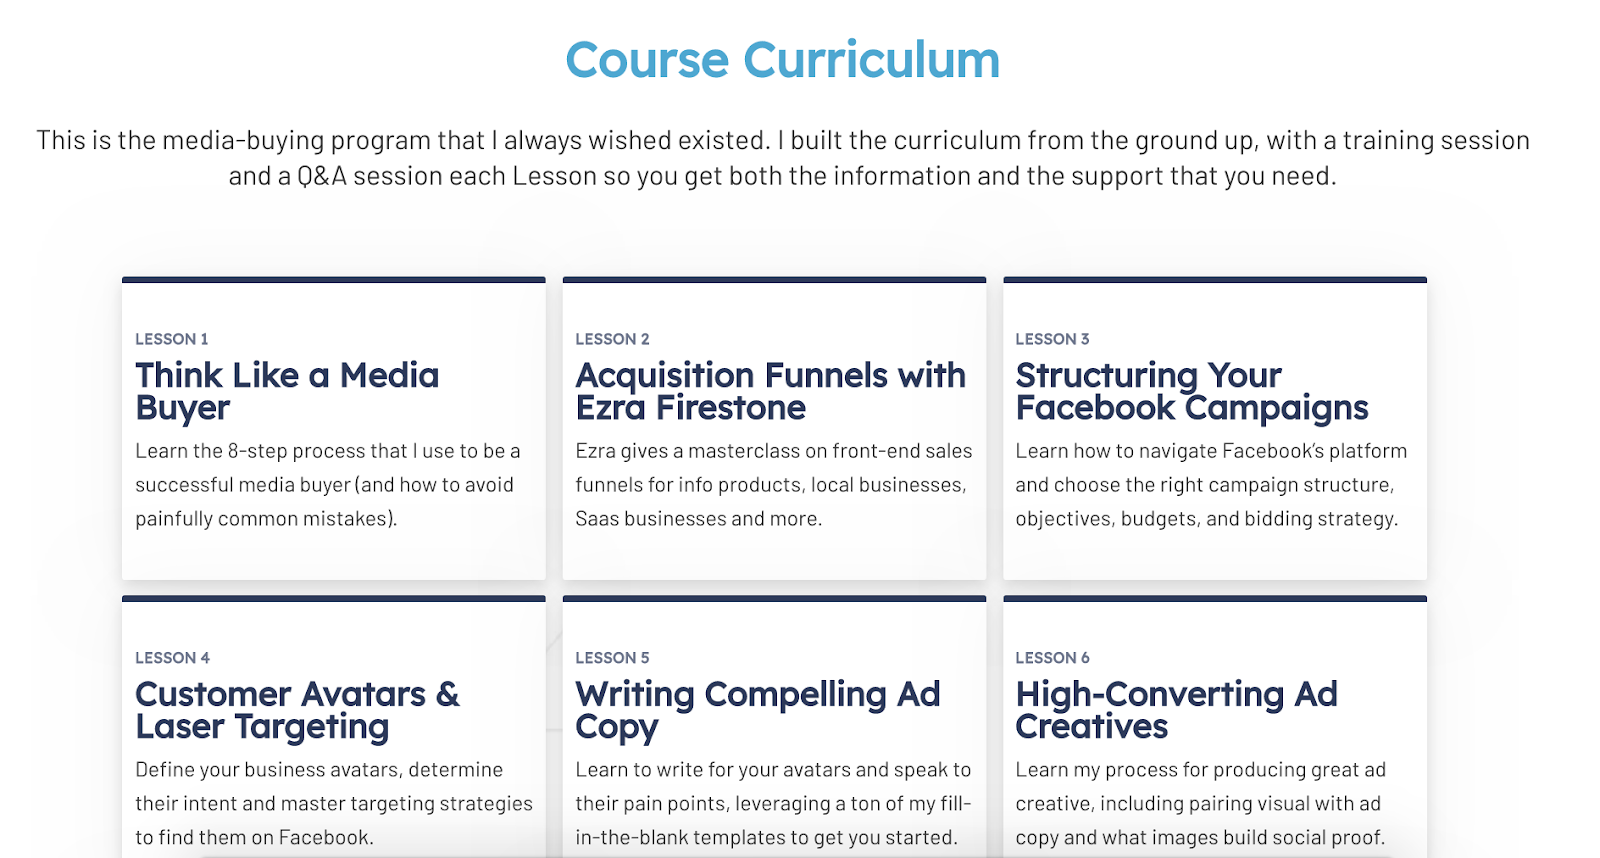 Train My Traffic Person Course Curriculum